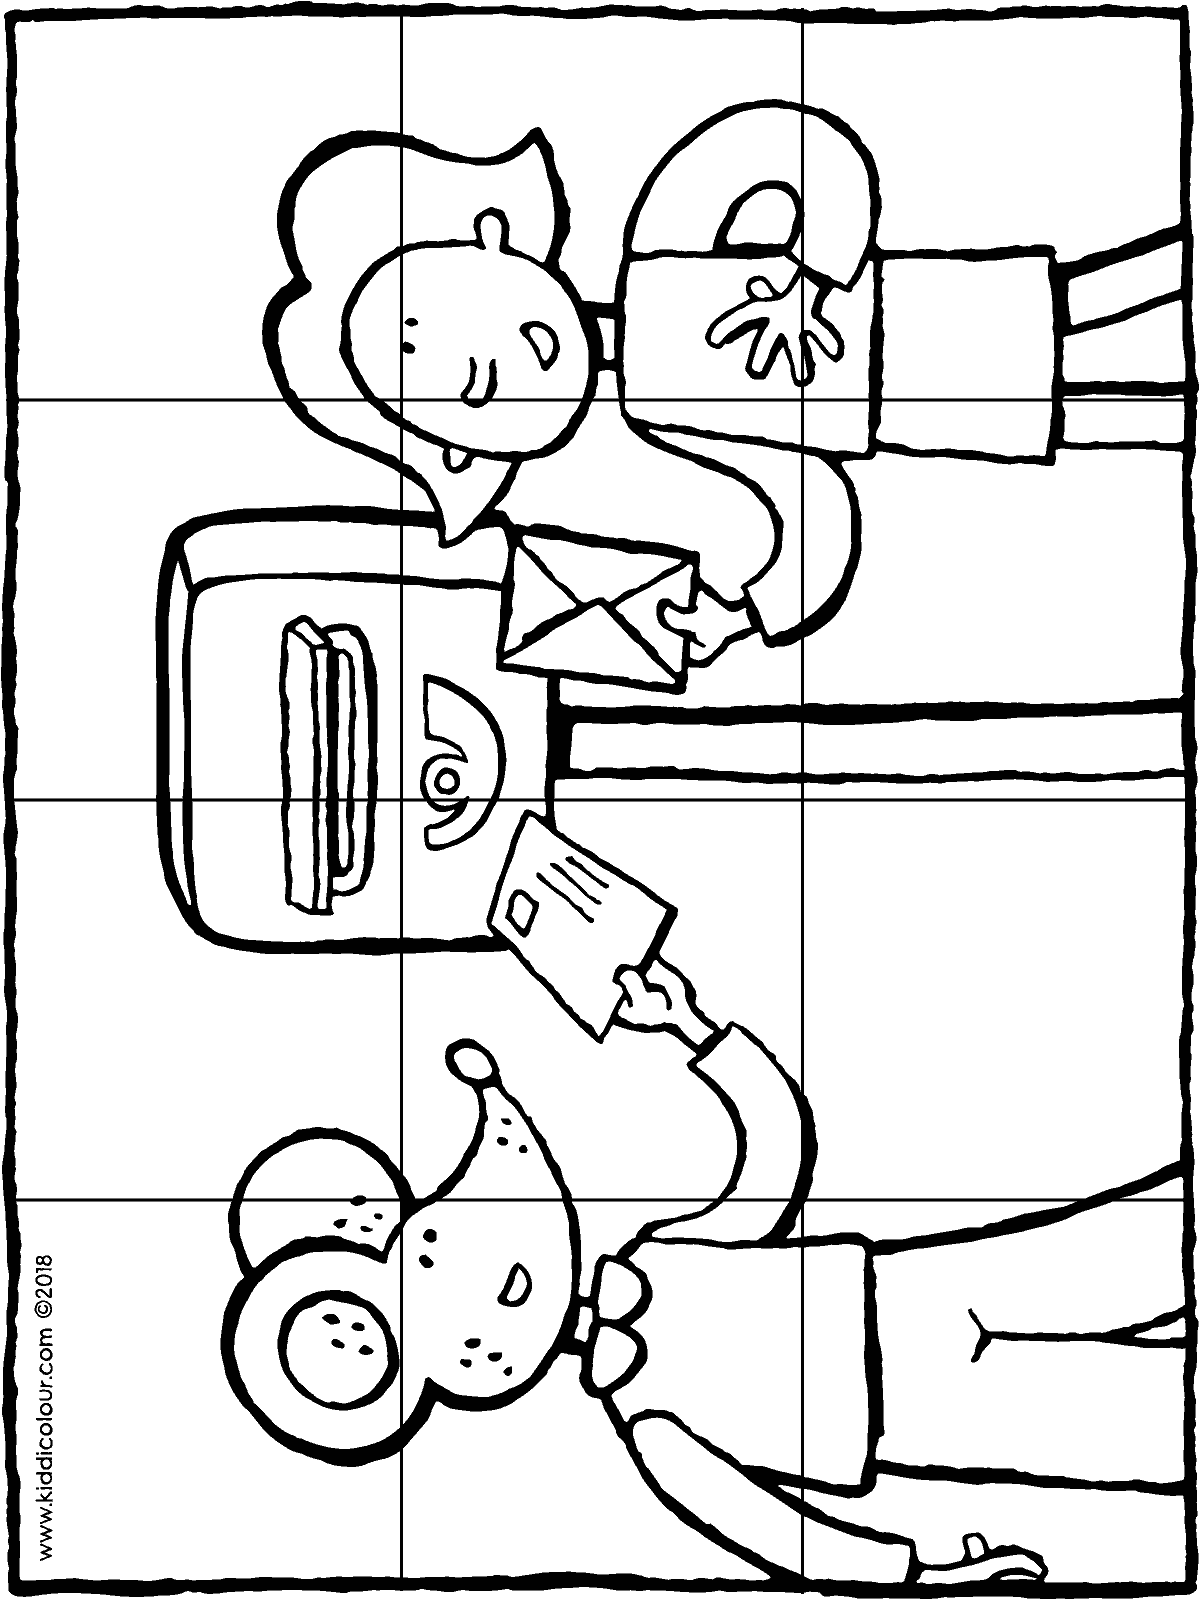 puzzle 12 pieces Emma and Thomas at the postbox colouring page drawing picture 01H